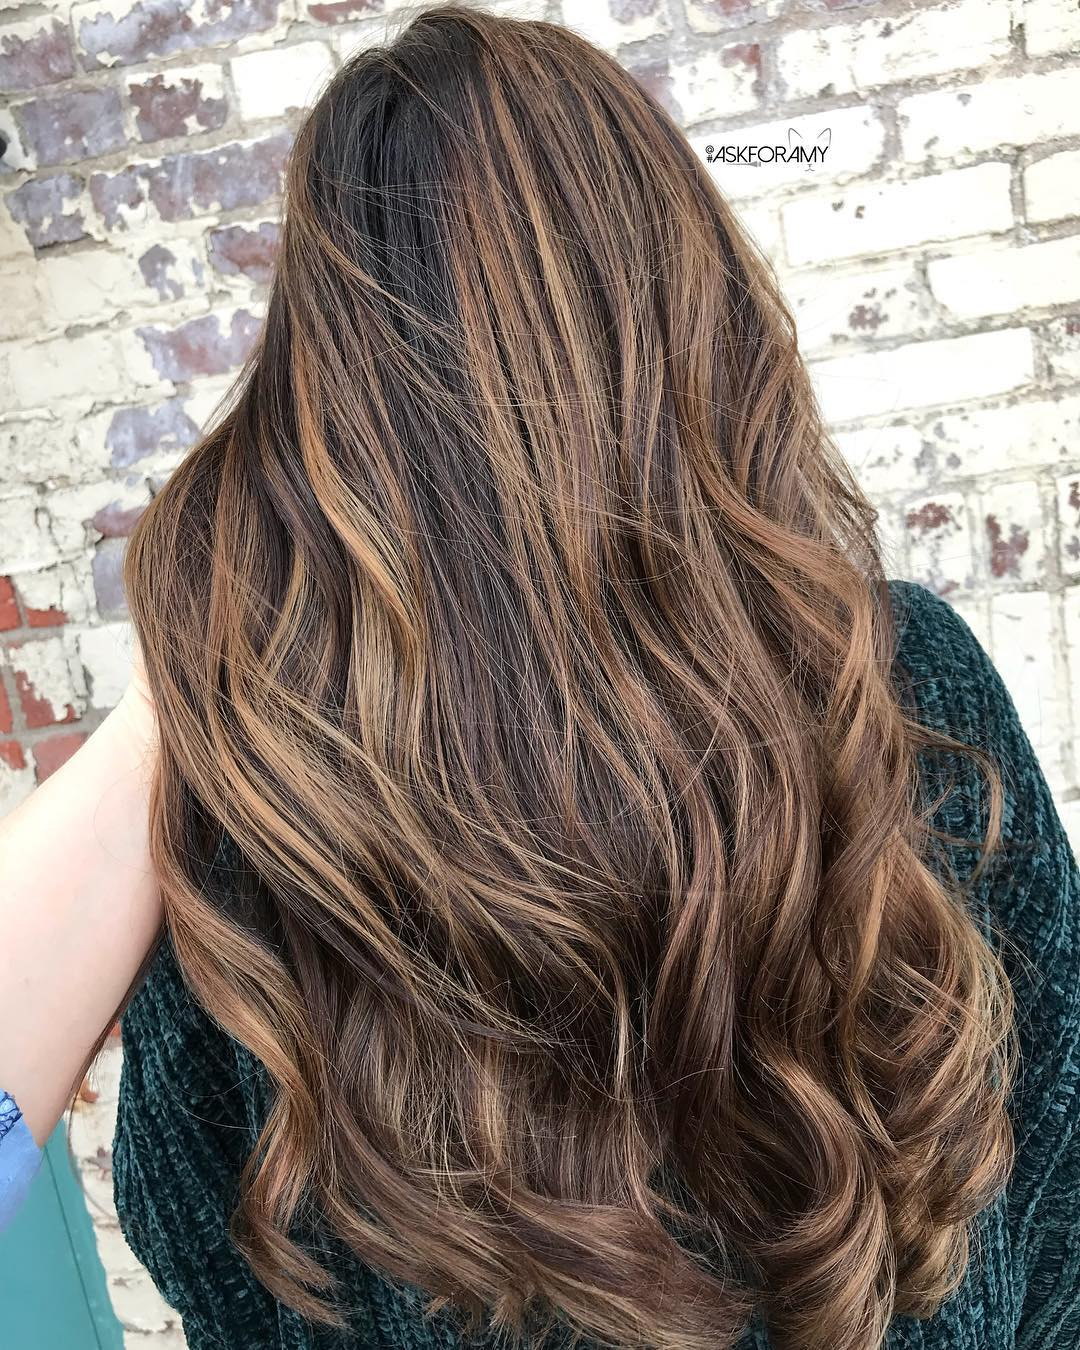 Long Thick Brown Hair with Caramel Highlights